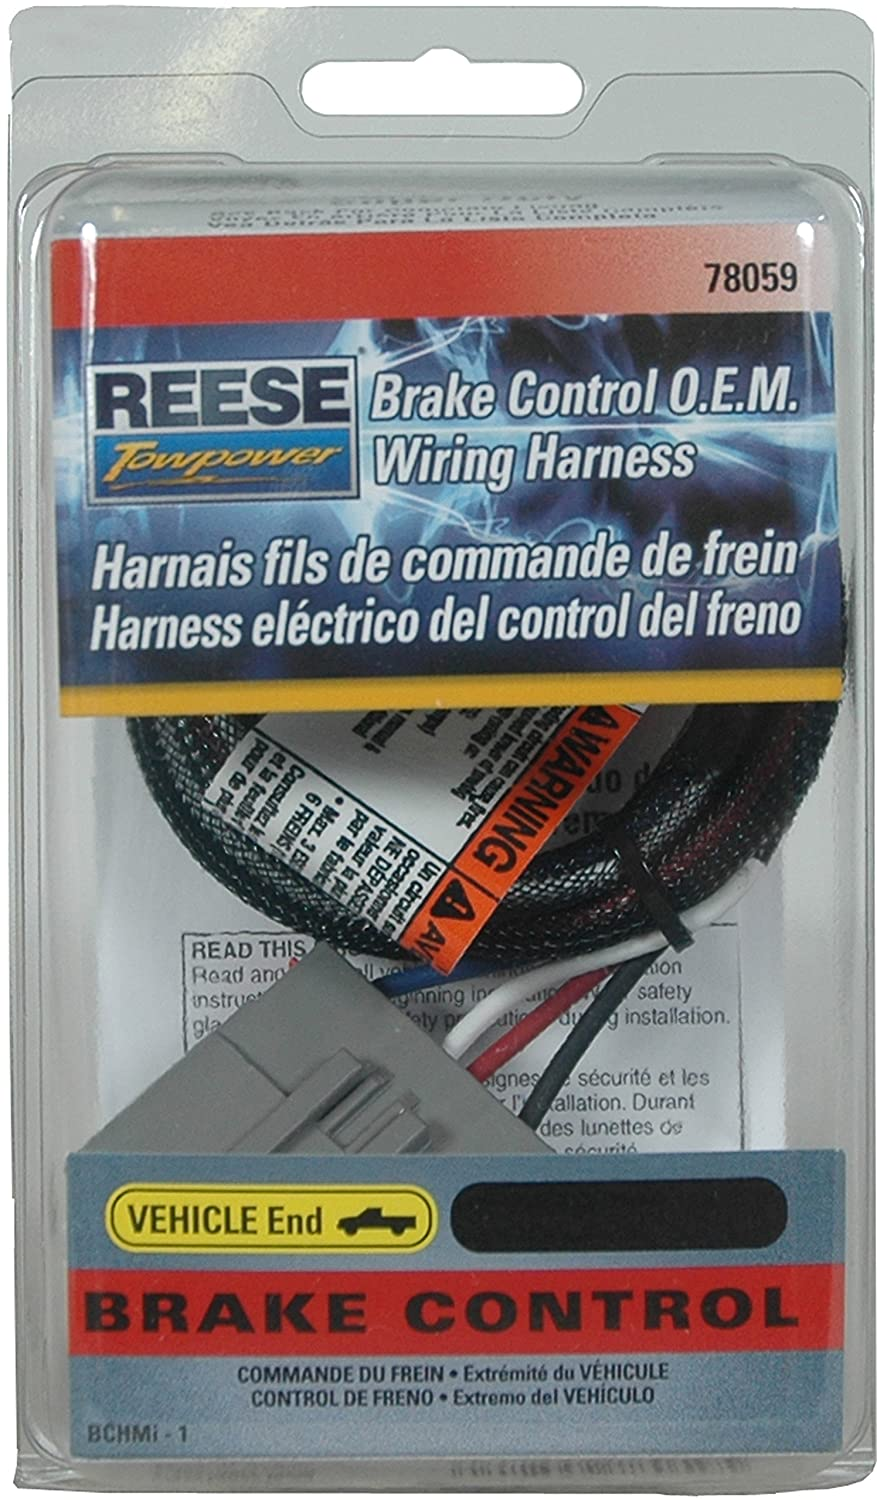 Reese Towpower 78059 Brake Control Wiring Harness for Ford Super Duty